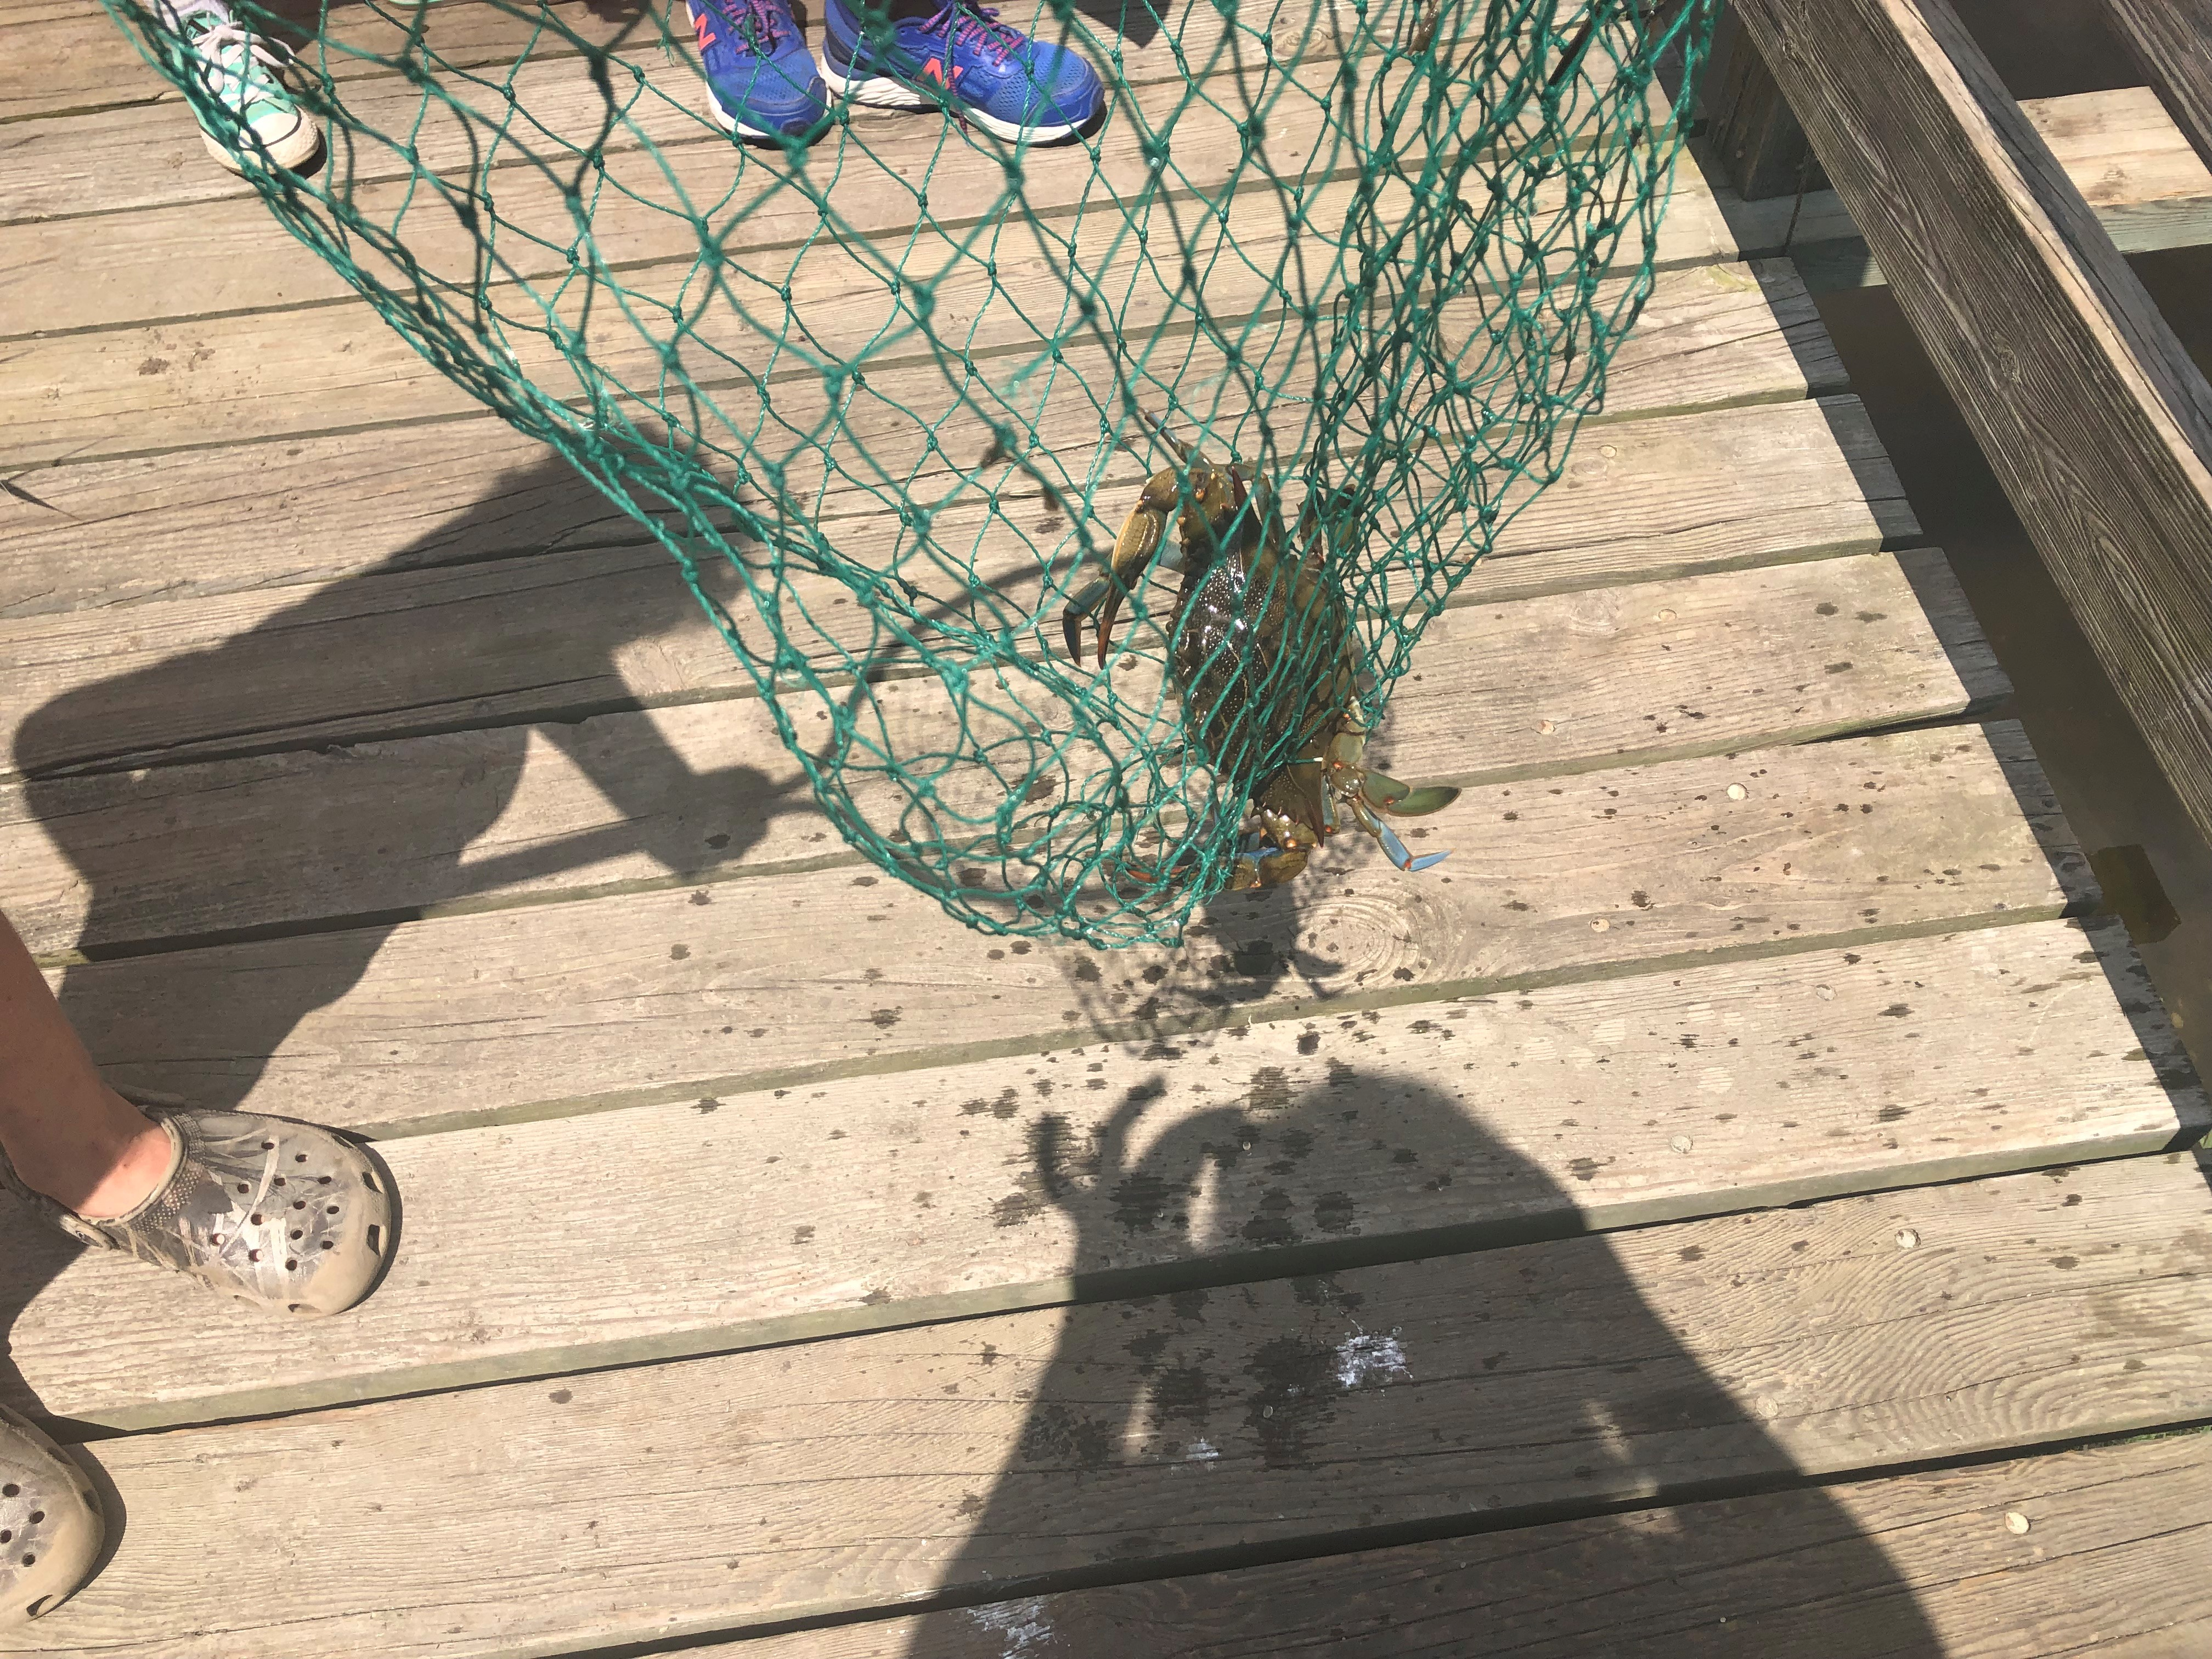 blue crab in a net